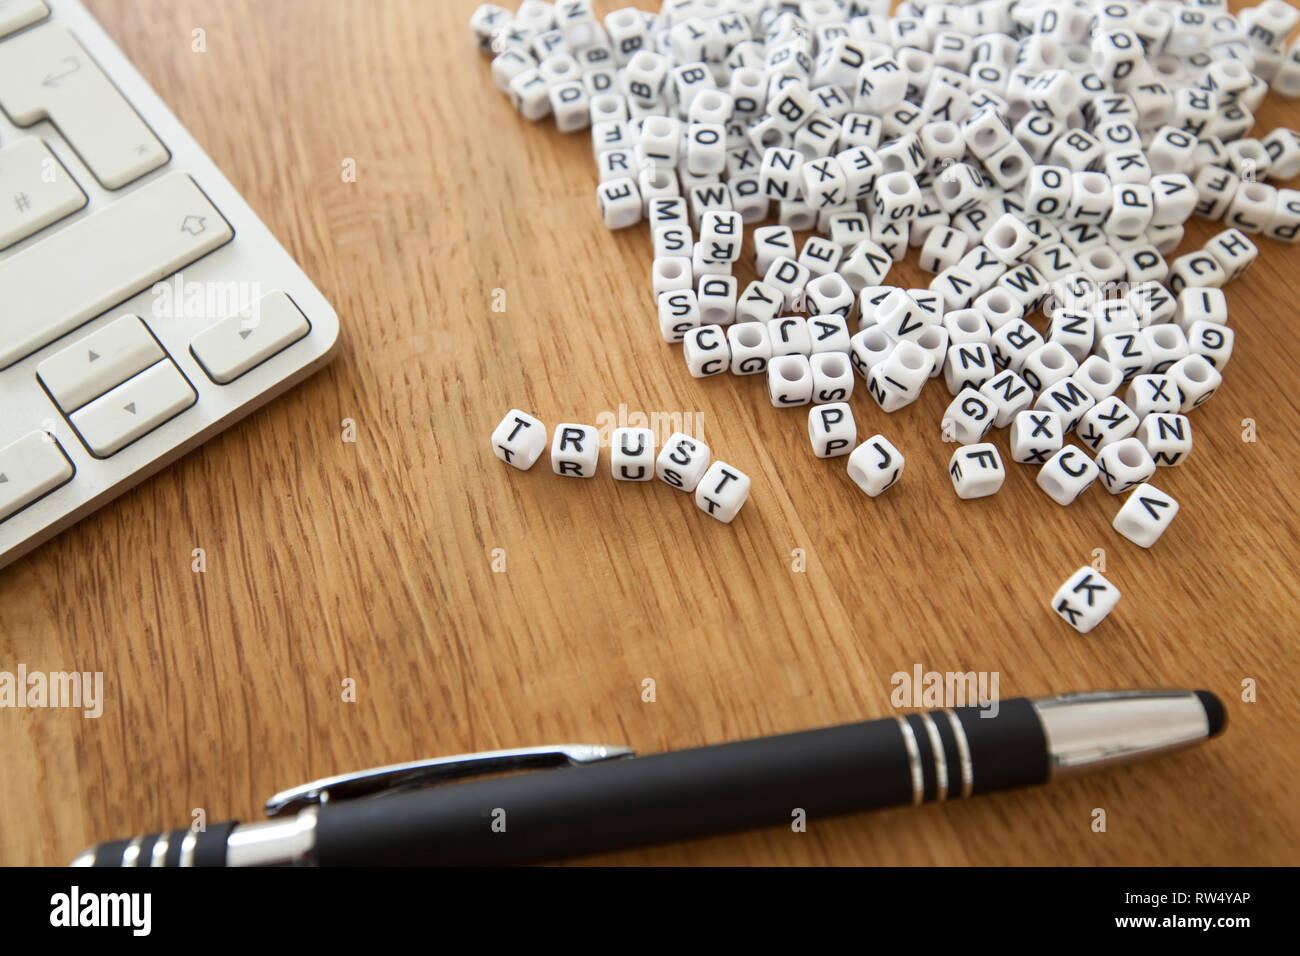 Trust word written on cube shape white blocks on wooden Business table Stock Photo